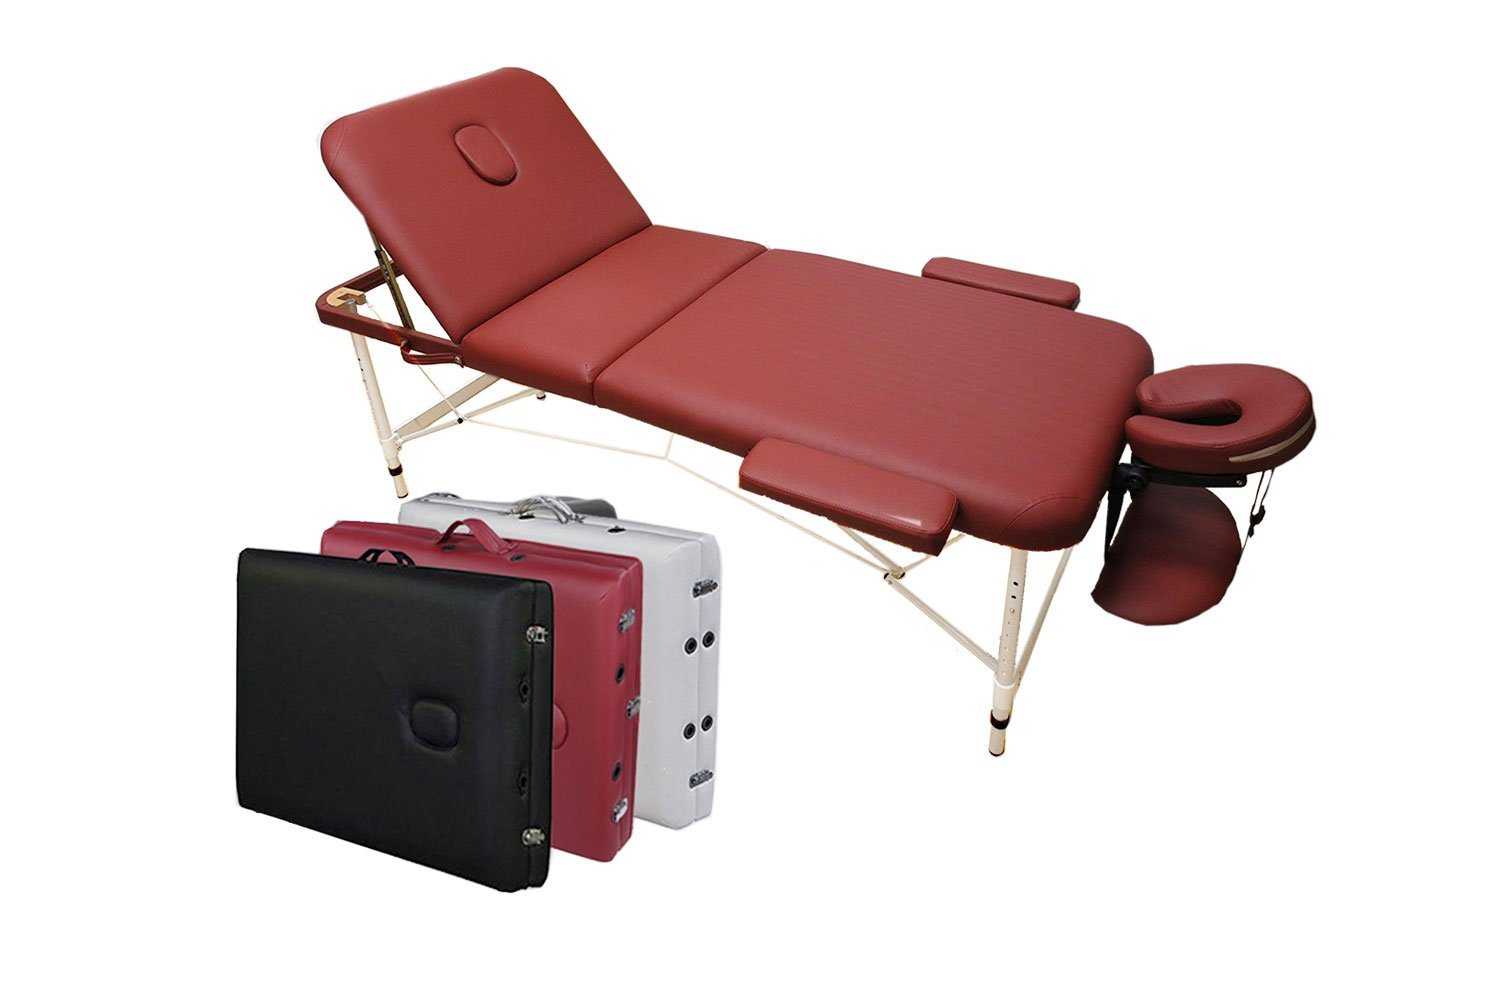 Angel 3-Section Aluminum 84L Portable Massage Table Facial SPA Bed Tattoo w/Free Carry Case (Burgundy Red) Angel Canada